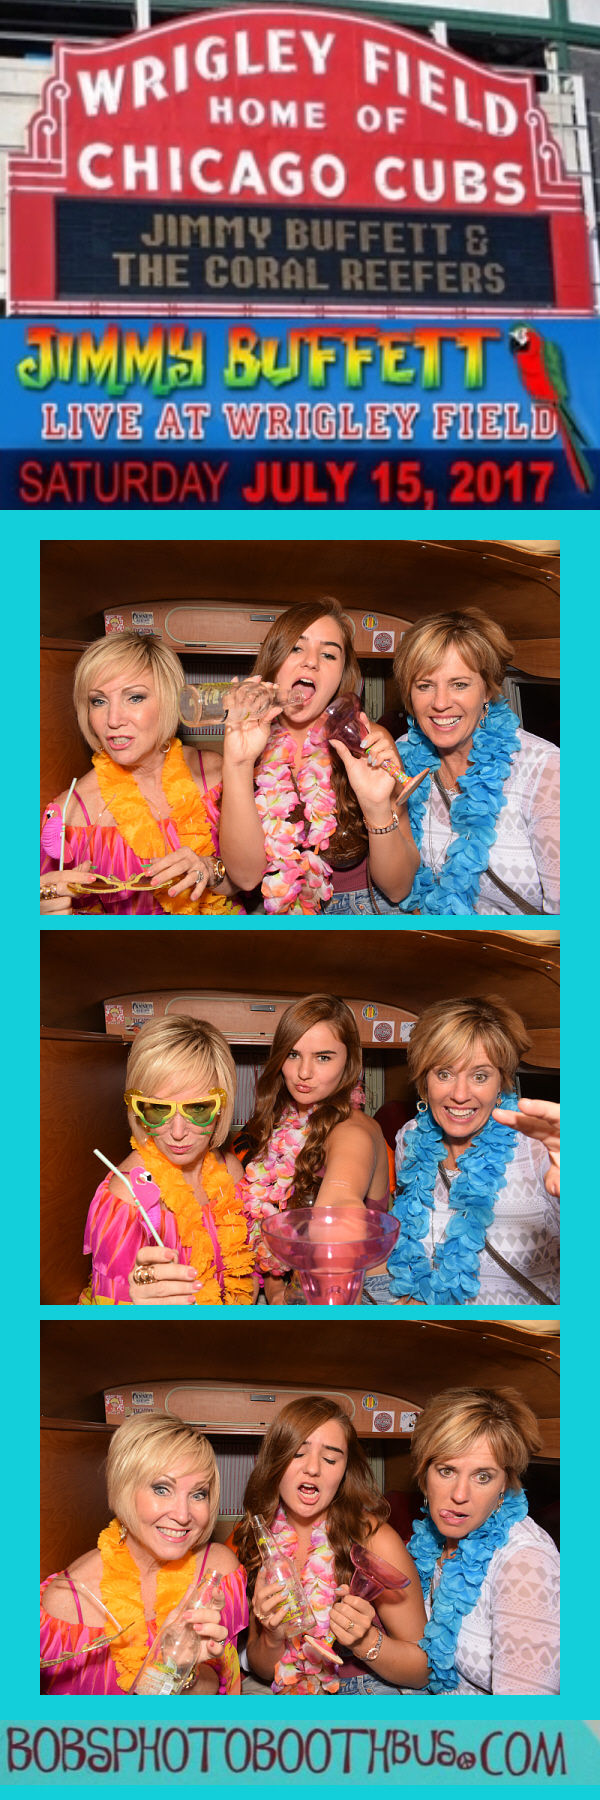 Jimmy Buffett final photo strip graphic_62.jpg